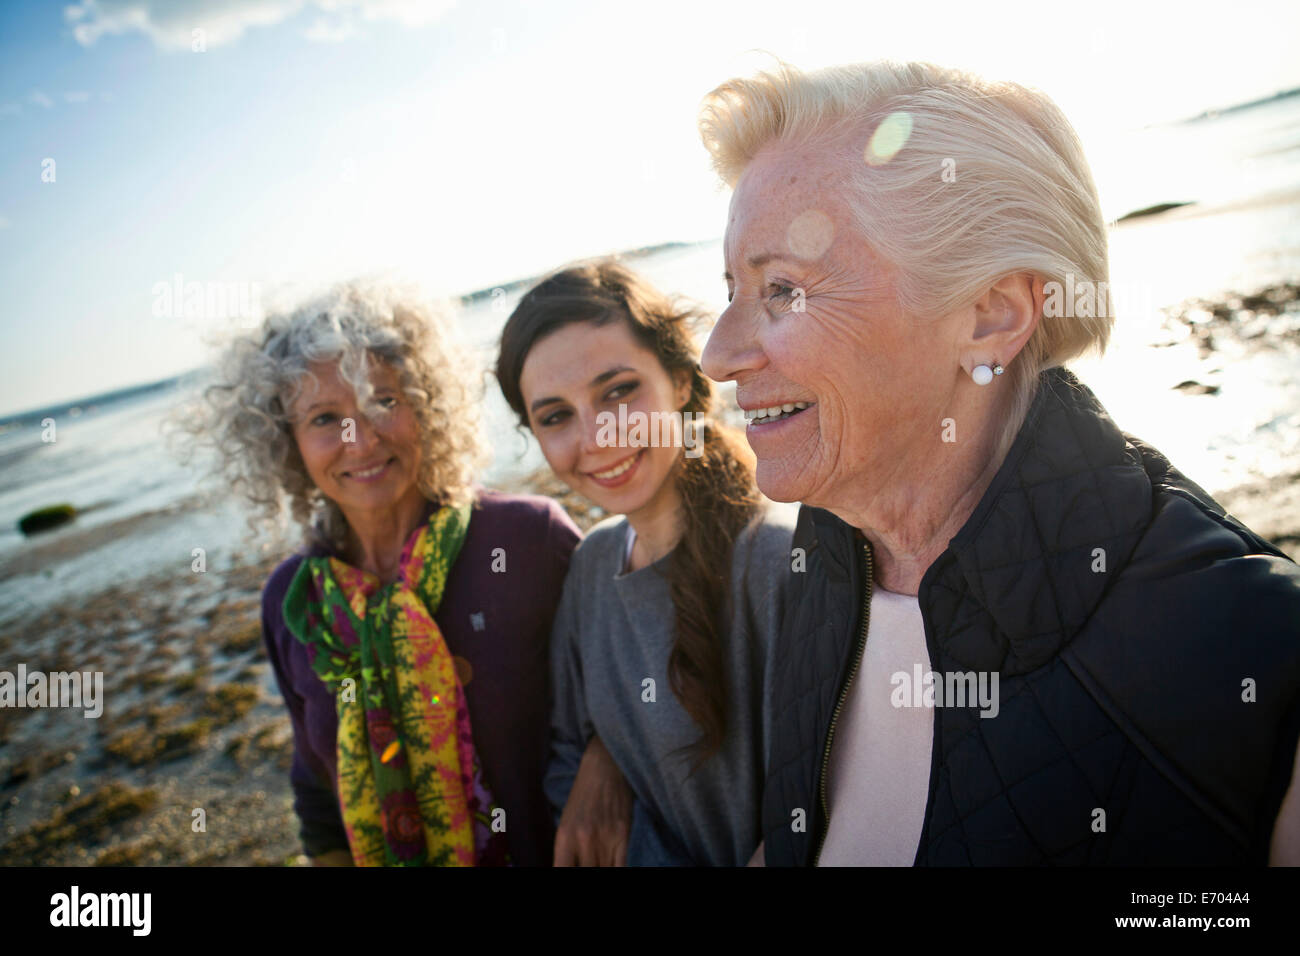 Les femmes de la famille chatting on beach Photo Stock